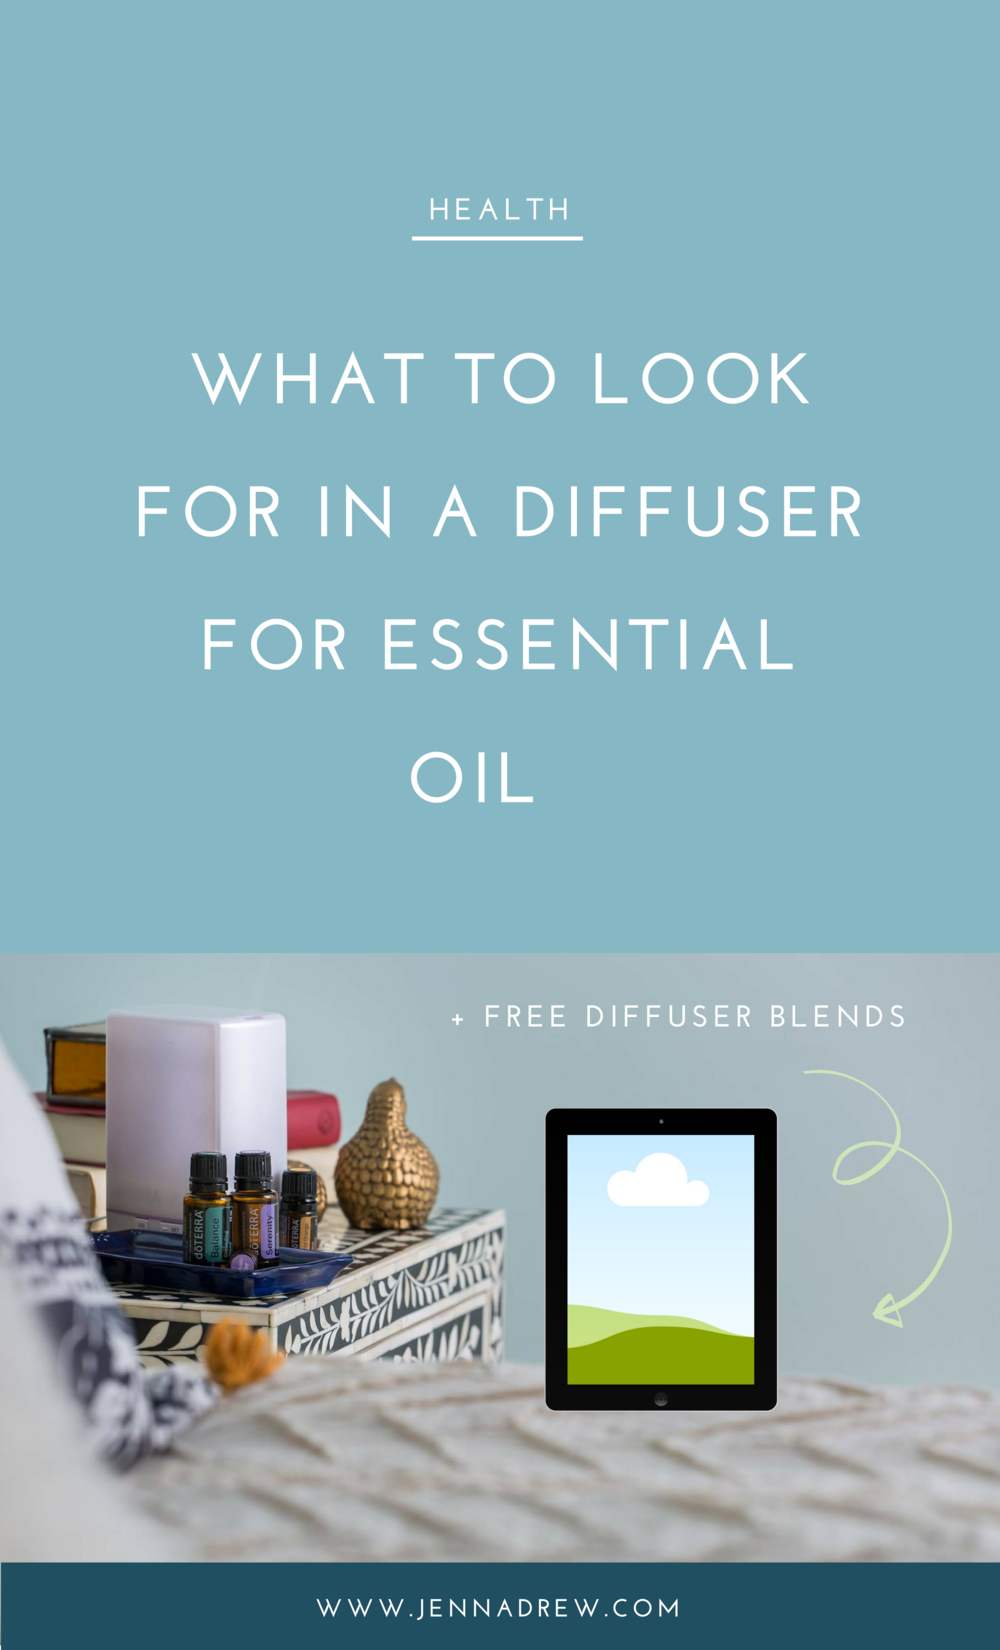 What to look for in an essential oil diffuser.